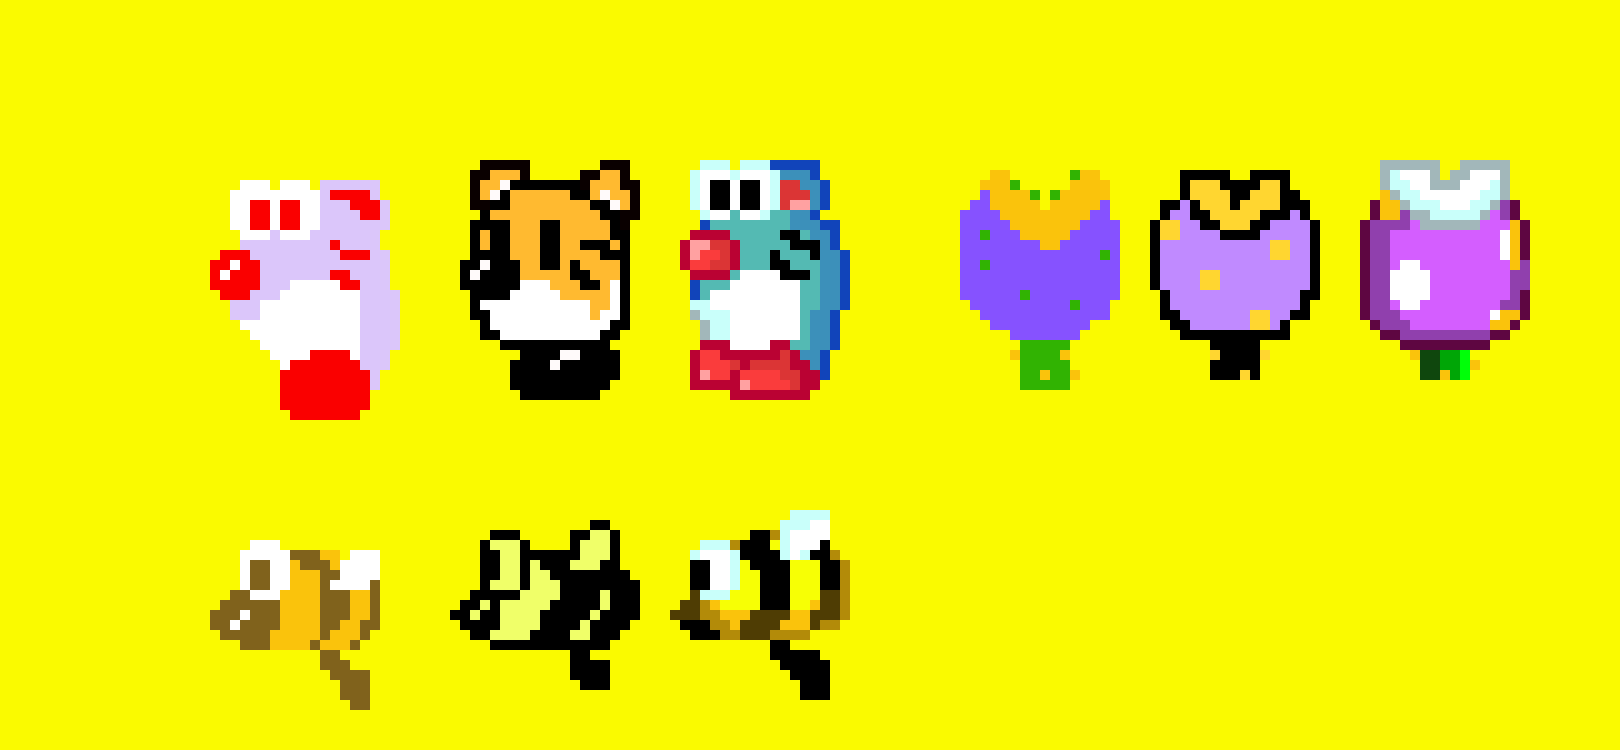 Super Mario Maker 2 some 3D world enemies in different